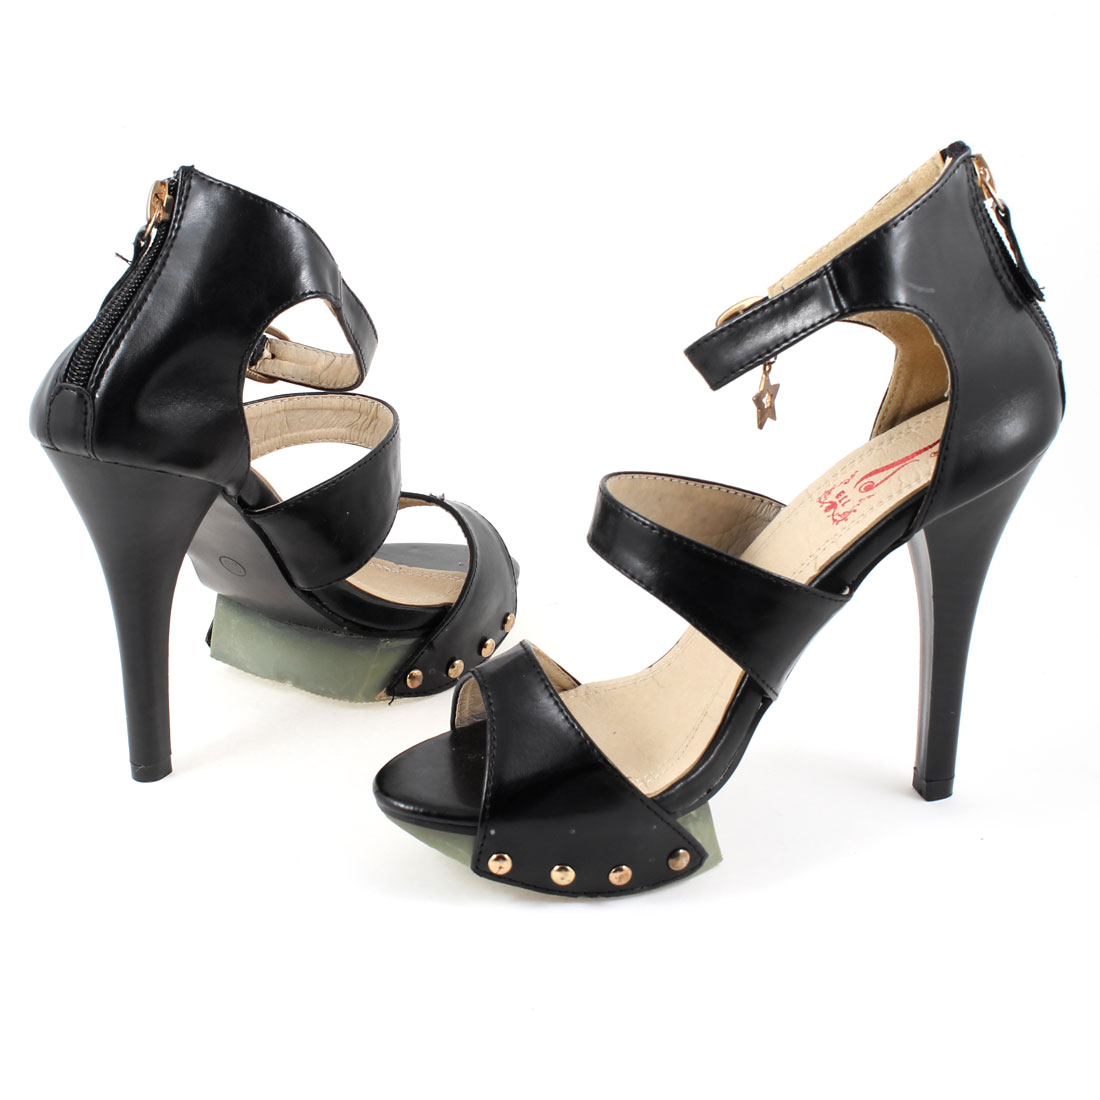 Women Stiletto Heels Fashion Thin High Heel Star Buckle Sandal Shoes Black US 7